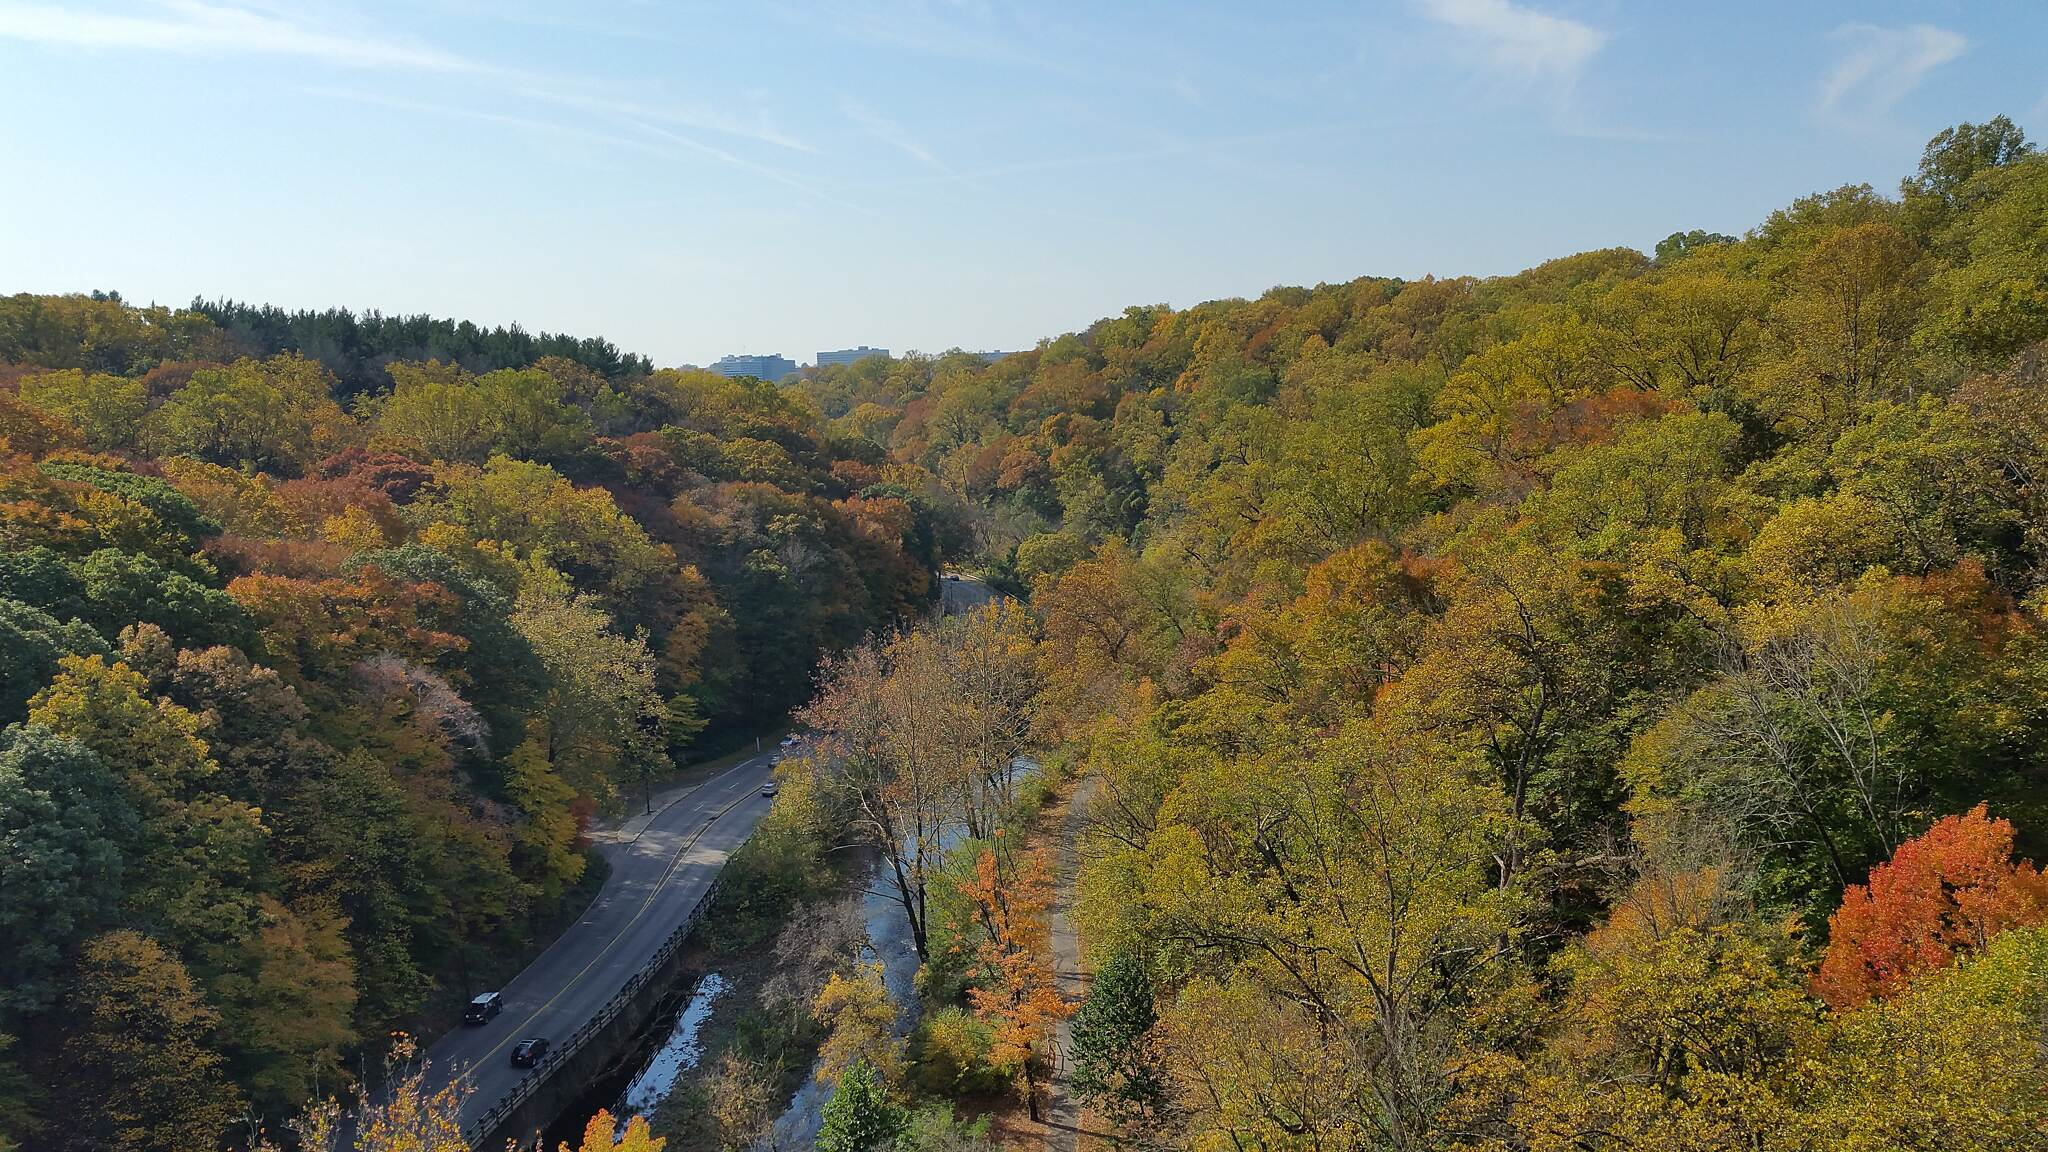 Lincoln Drive Trail  Amazing View From The Henry Ave. Bridge This picture was taken 11-02-2016. The Henry Ave Bridge goes over the Lincoln Dr., Wissahickon Creek, and the Lincoln Drive Trail. As you can see, the view is great. There is information stations to direct you on how to get to the bridge.